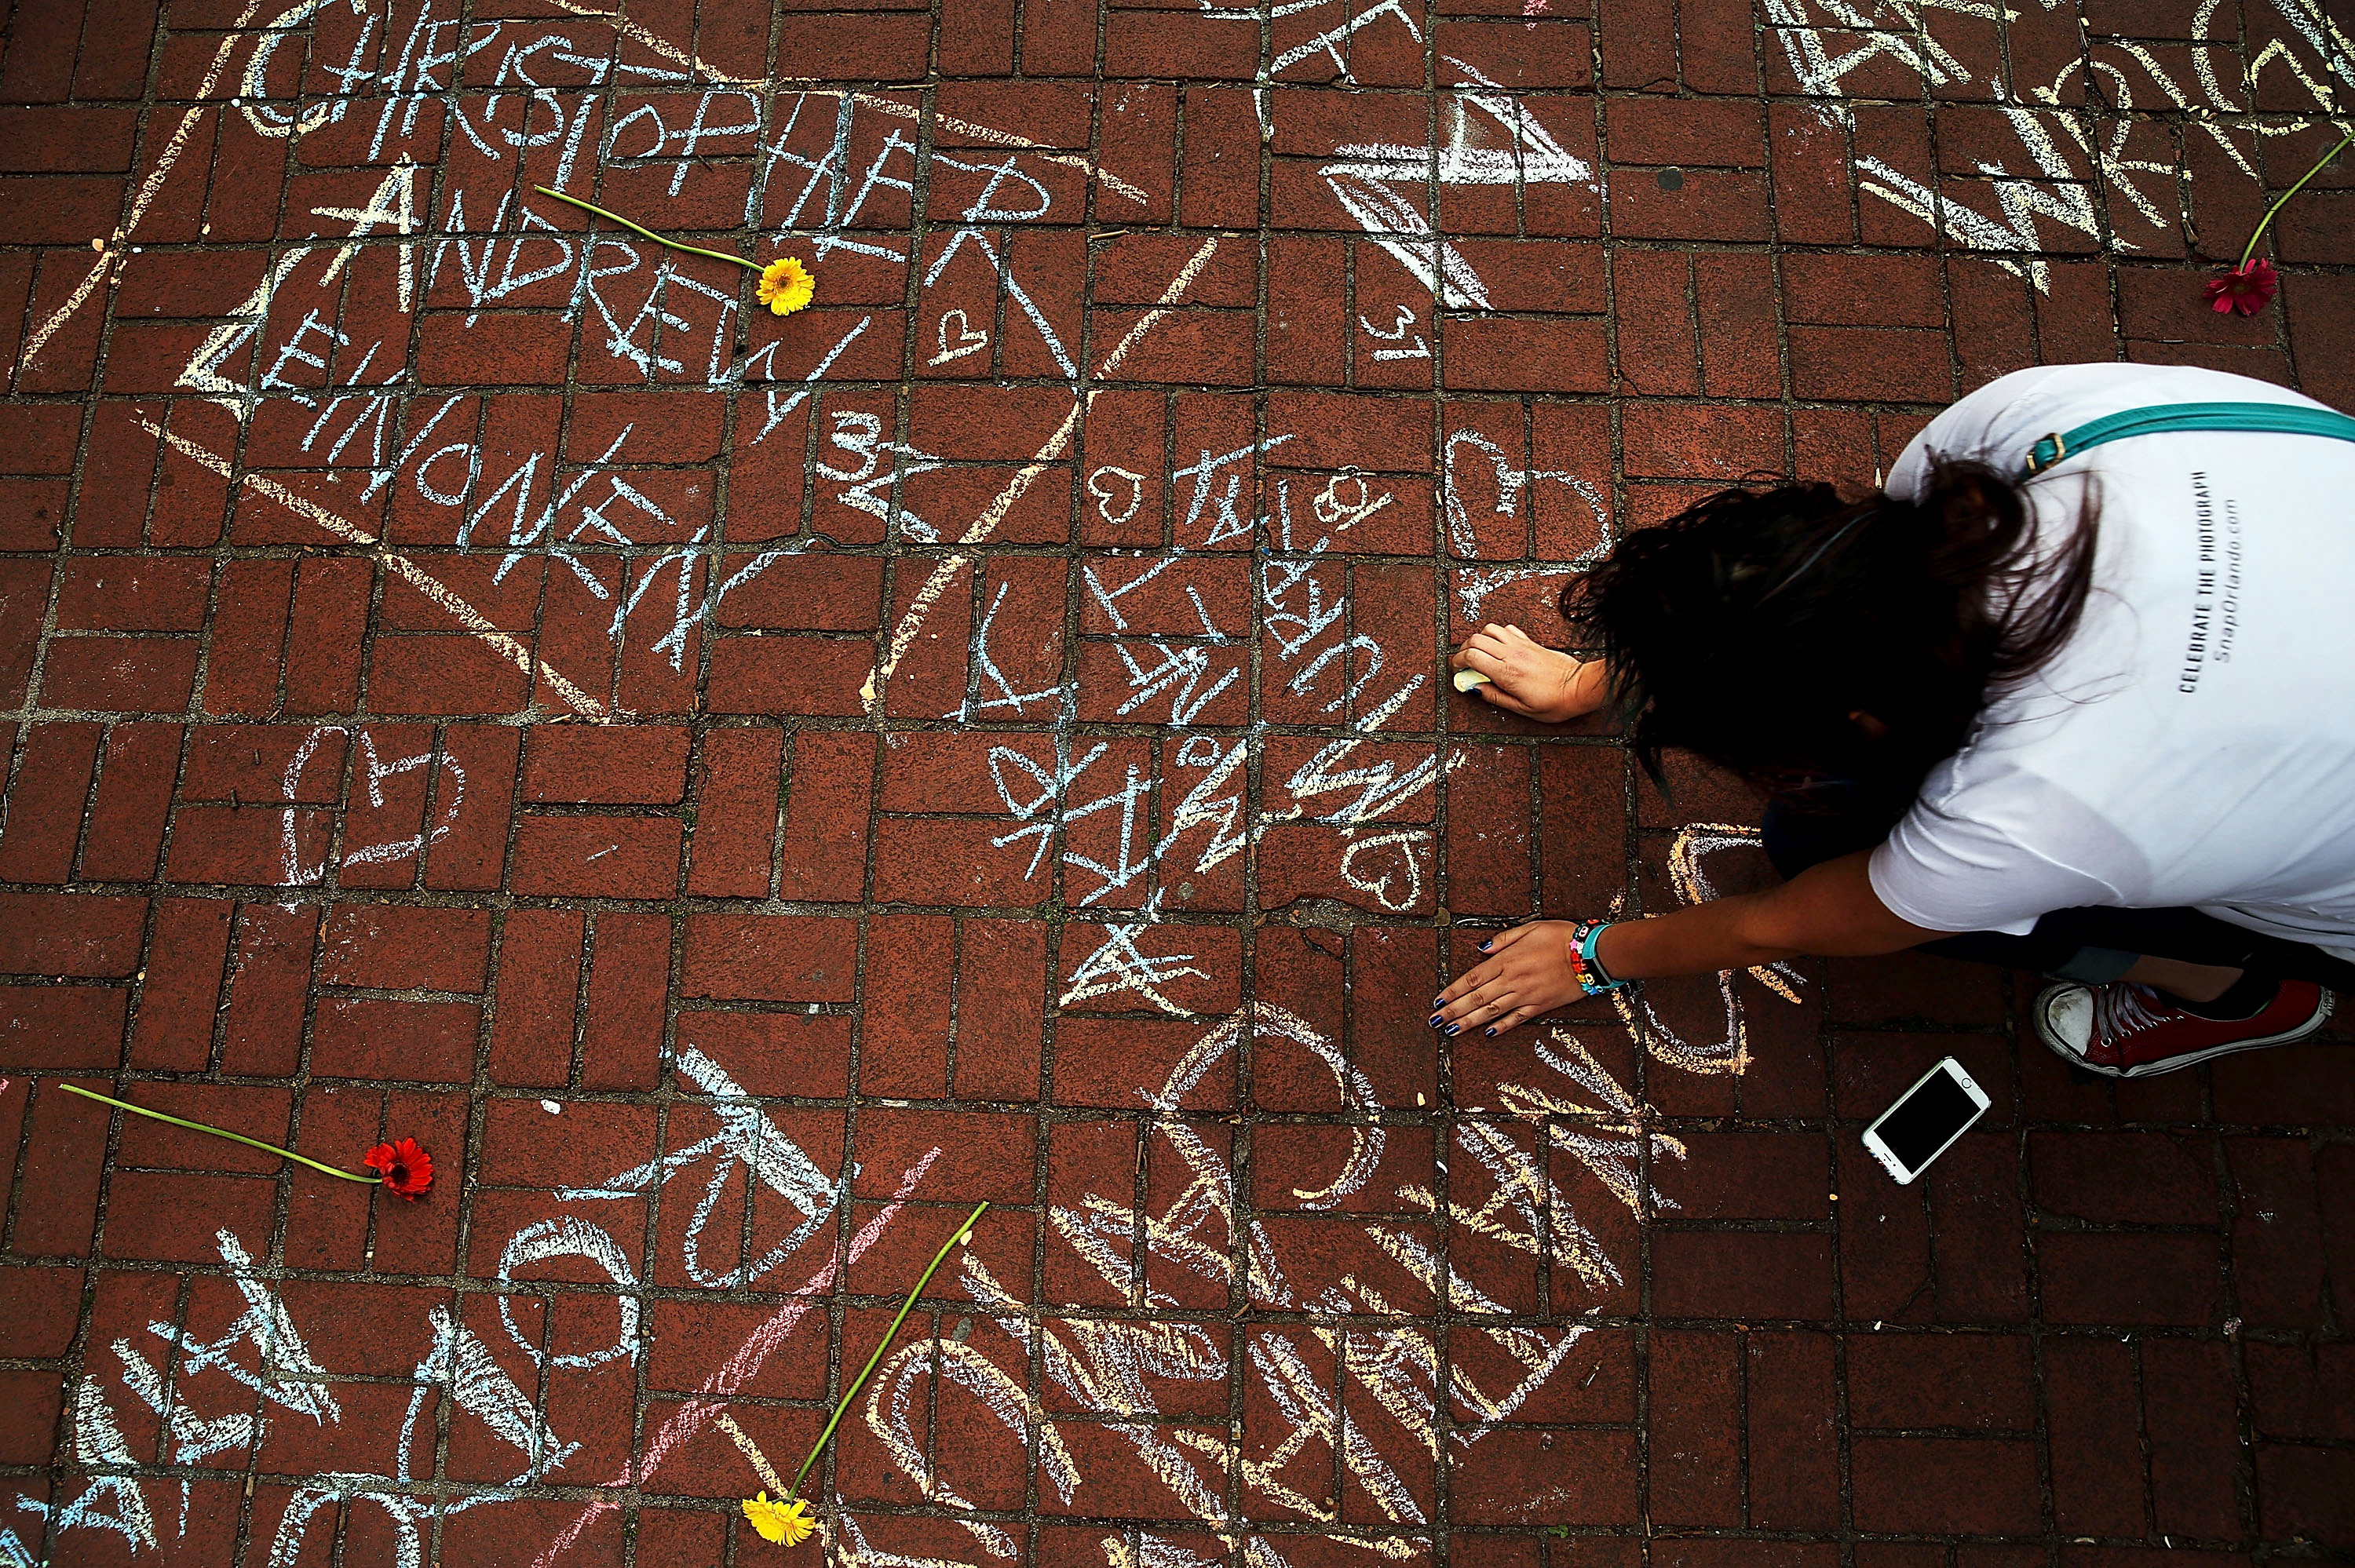 A woman pauses while writing the names of shooting victims in chalk in a park across from the iconic New York City gay and lesbian bar, The Stonewall Inn, on June 13, 2016 in New York City.